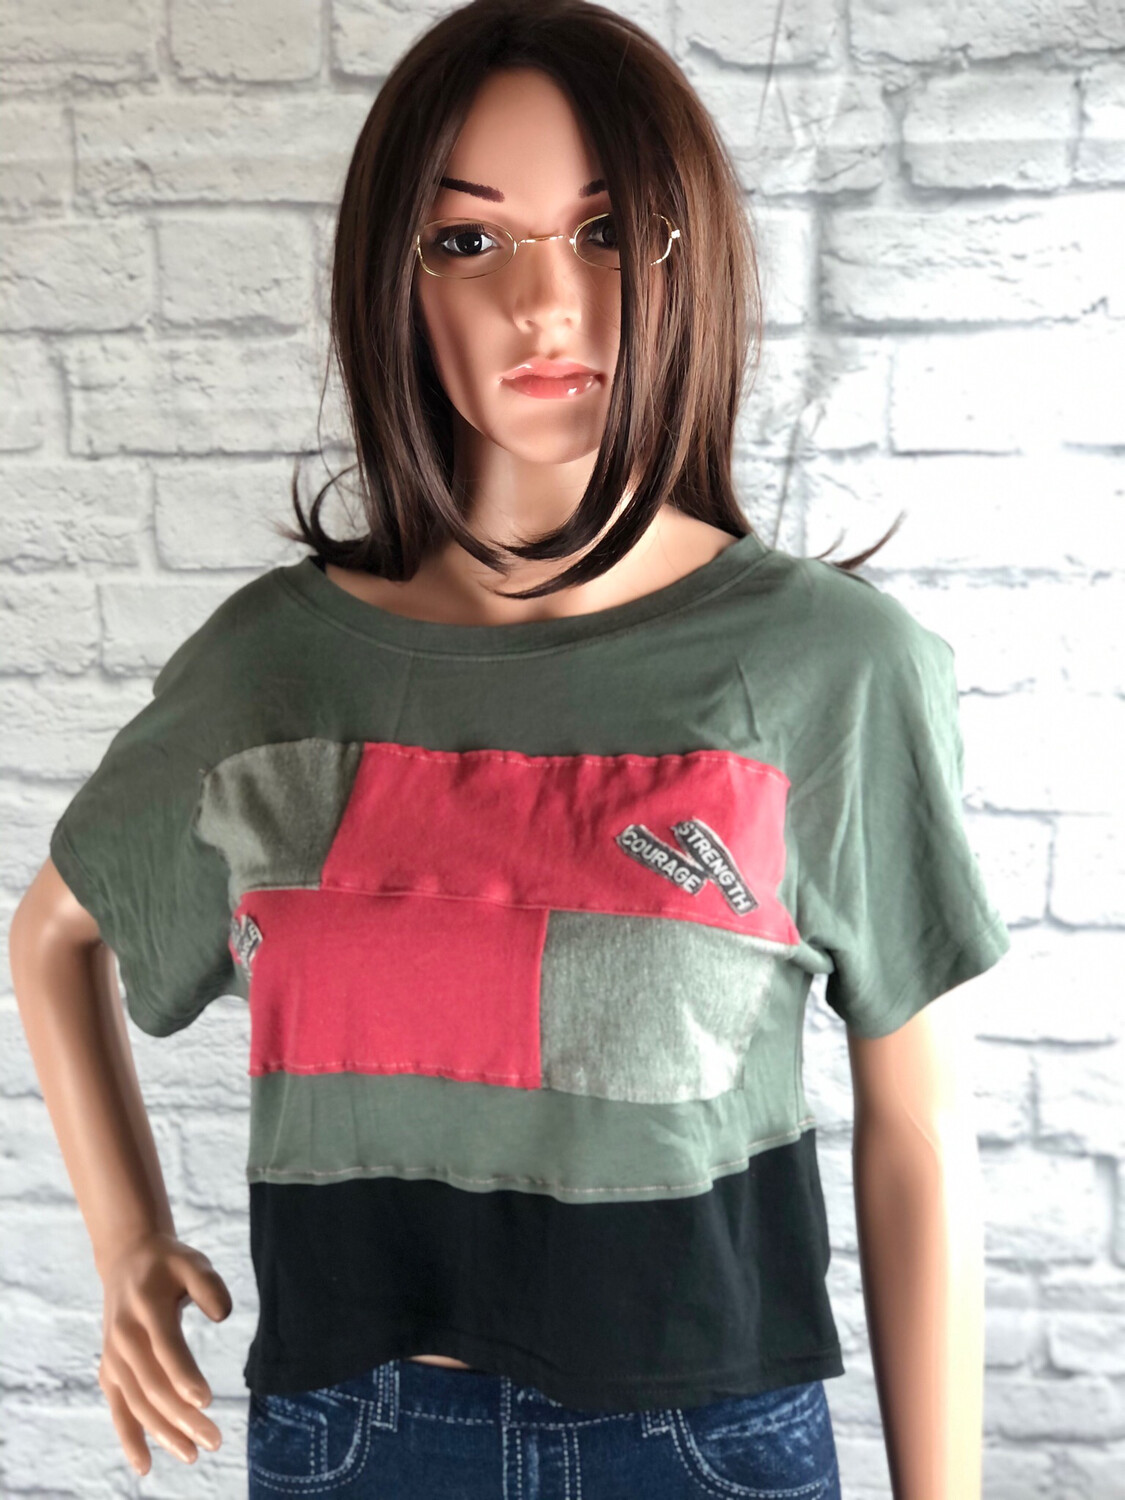 S Threads Upcycled Bold Unstoppable Crop Top Size Medium